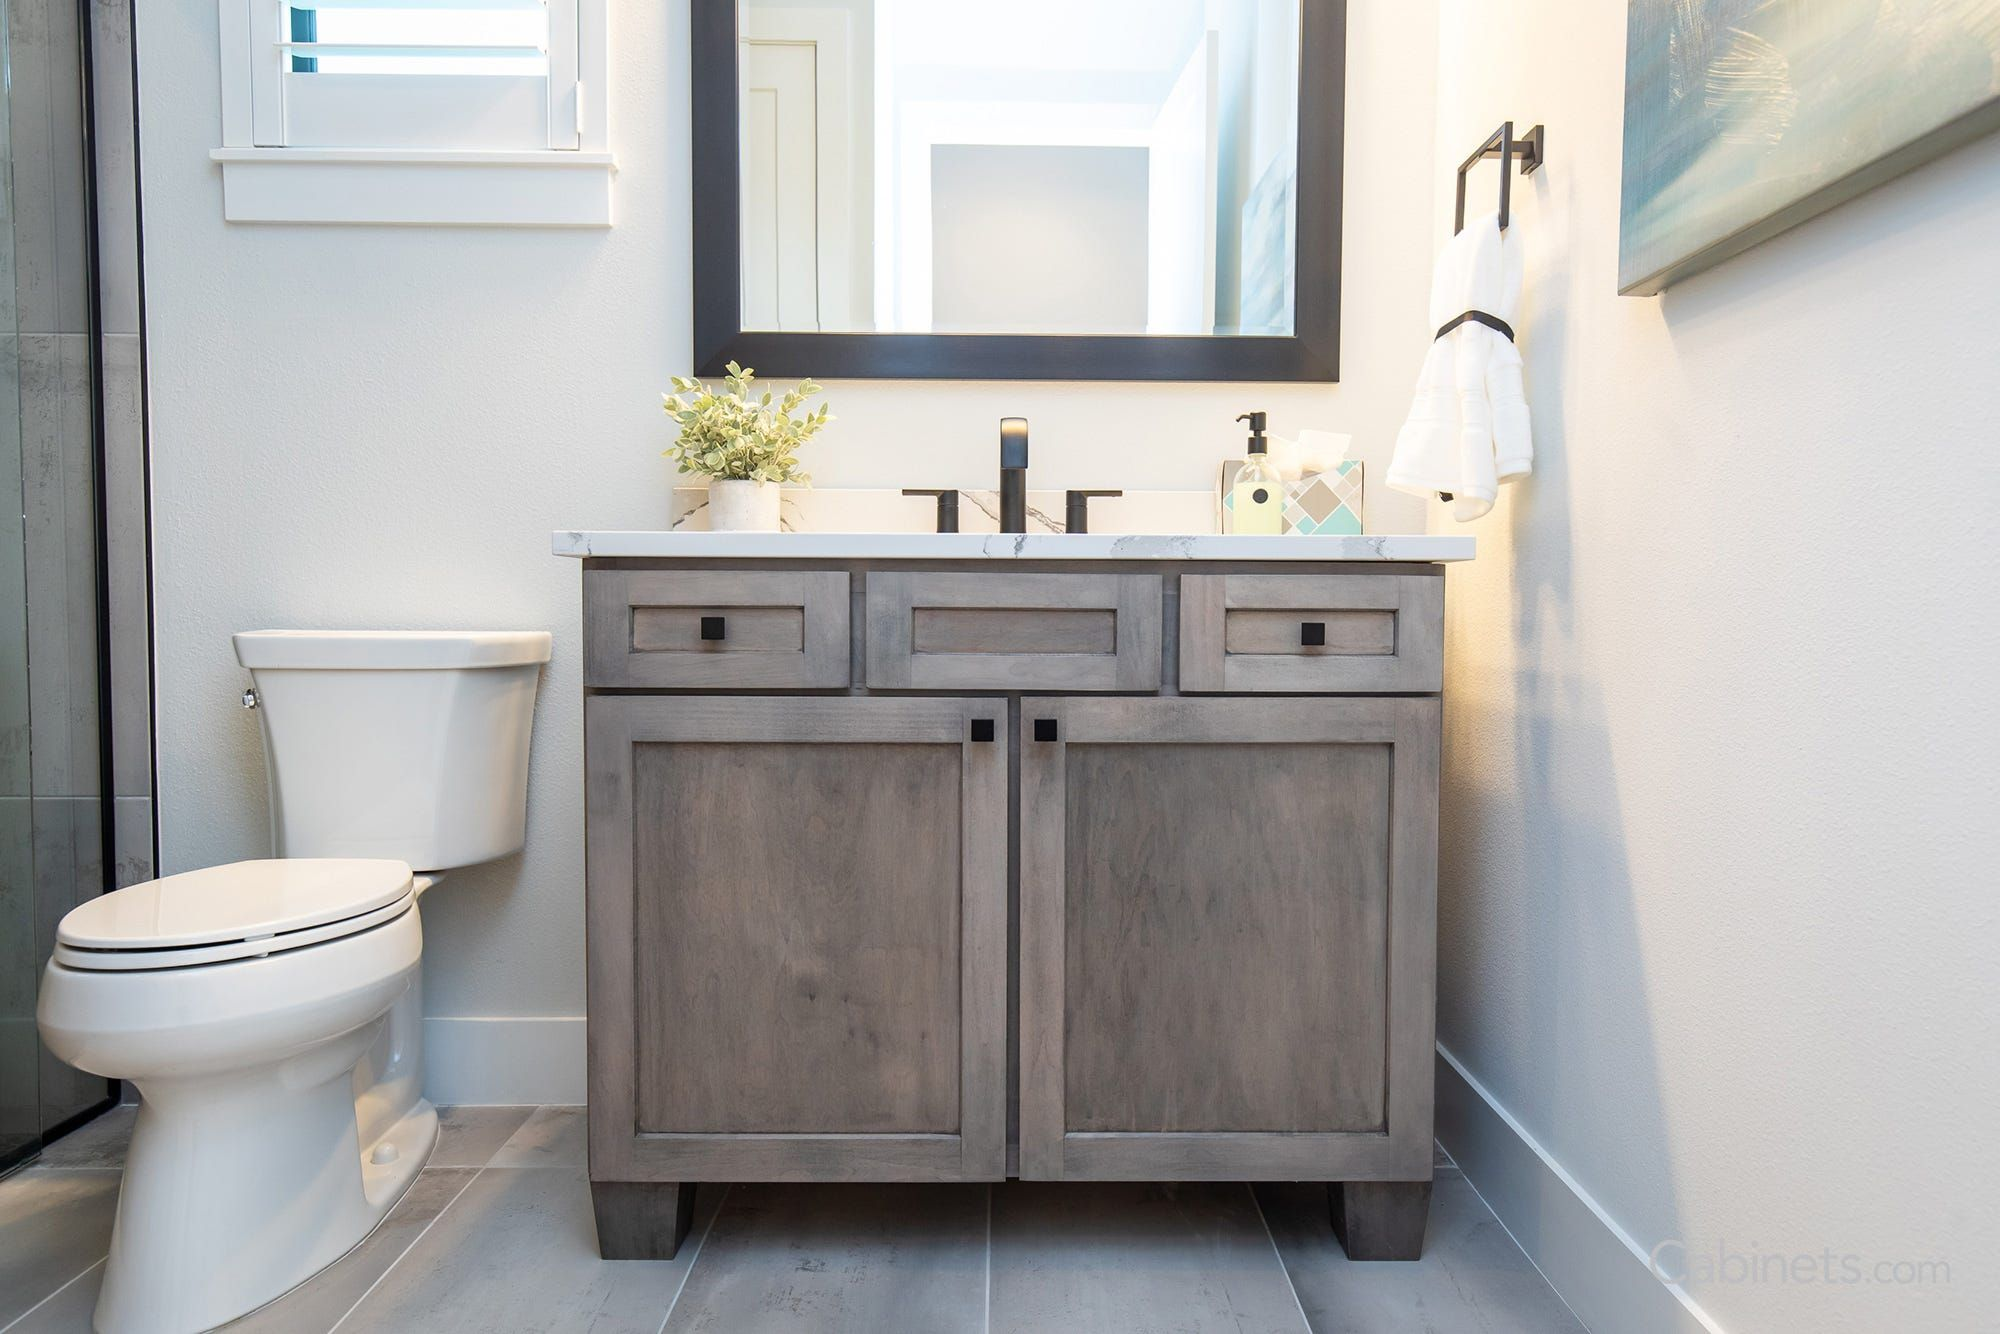 Furniture Style Vanity With Gray Stained Shaker Cabinets And Bunn Feet Cabinets Com Shaker Cabinets Gray Stained Cabinets Grey Stained Cabinets